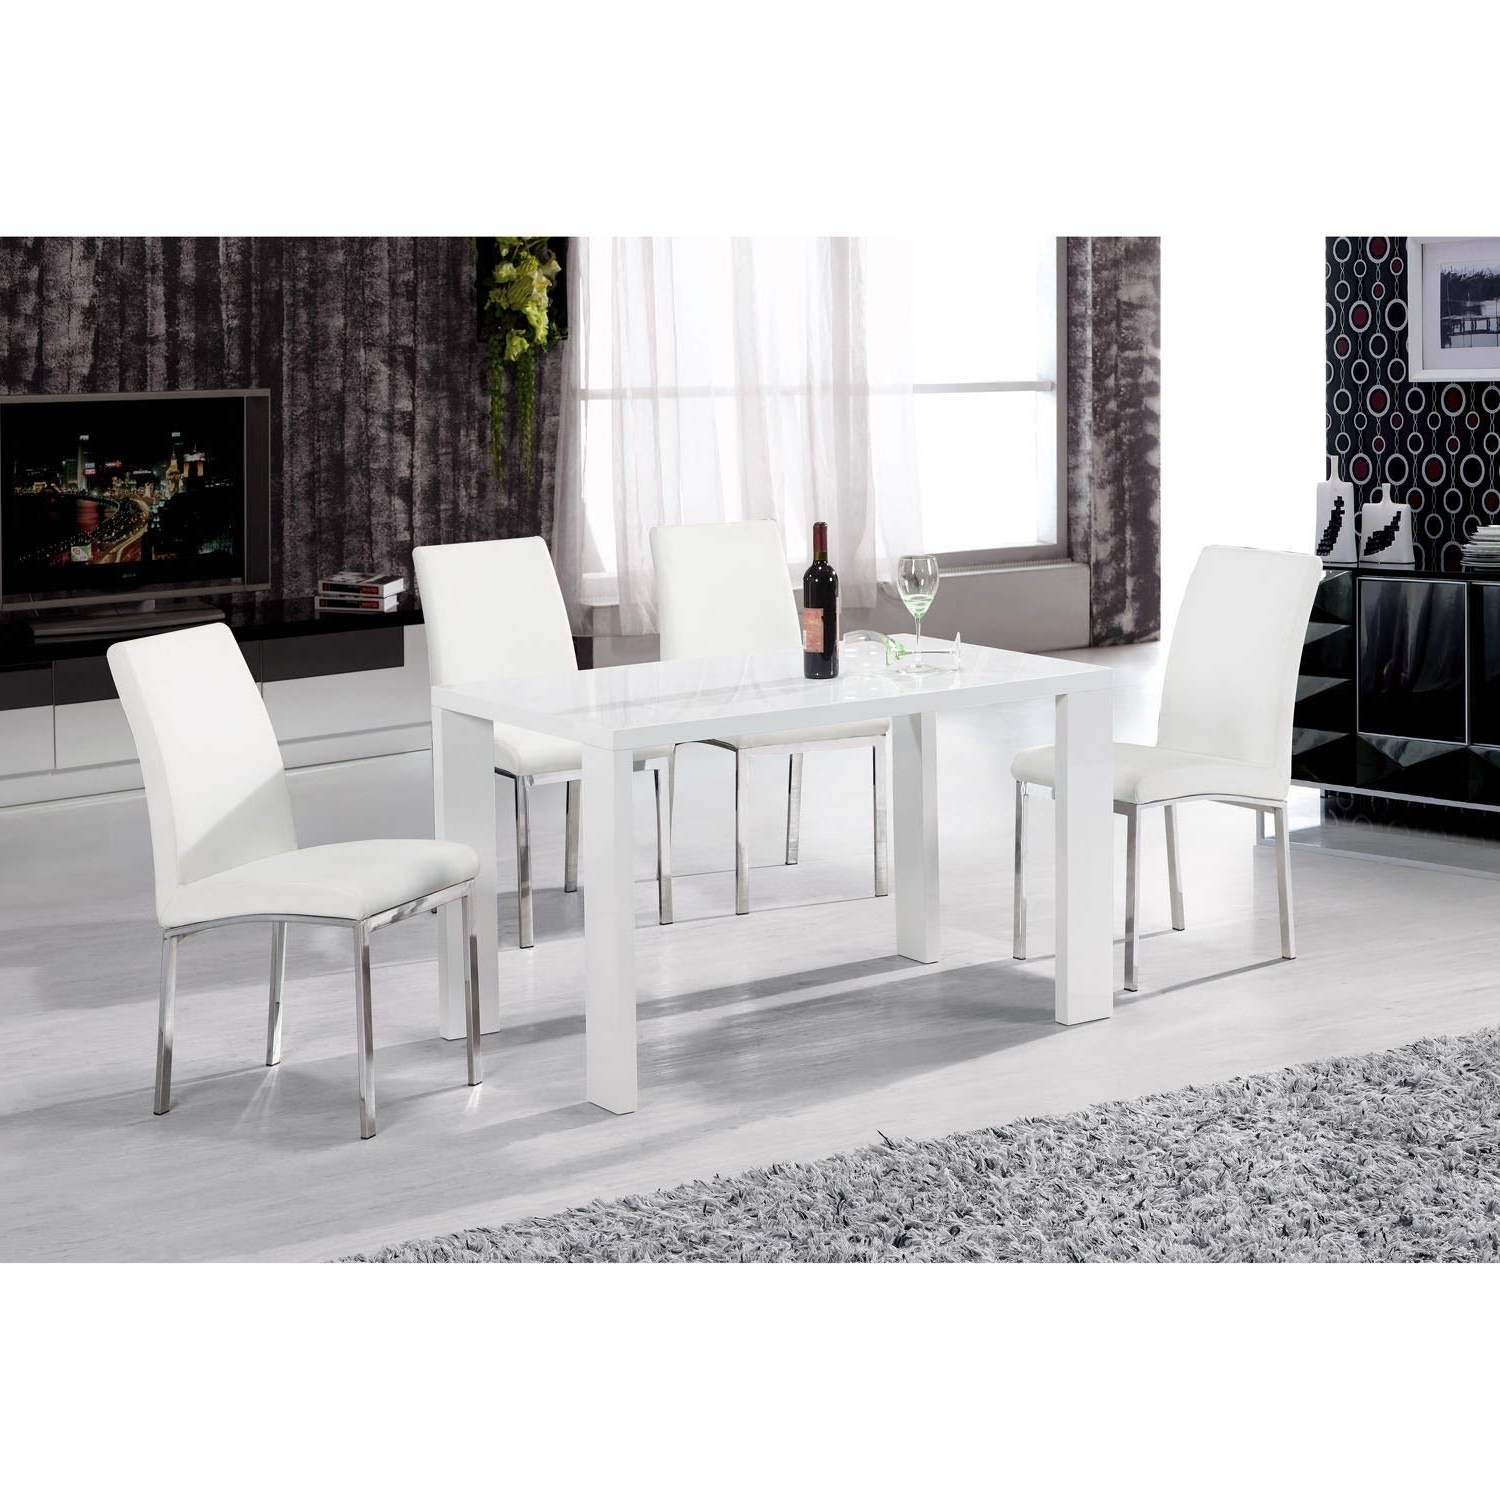 Heartlands Peru White High Gloss 130Cm Dining Table In Wood Within Popular High Gloss Dining Tables And Chairs (Gallery 20 of 25)